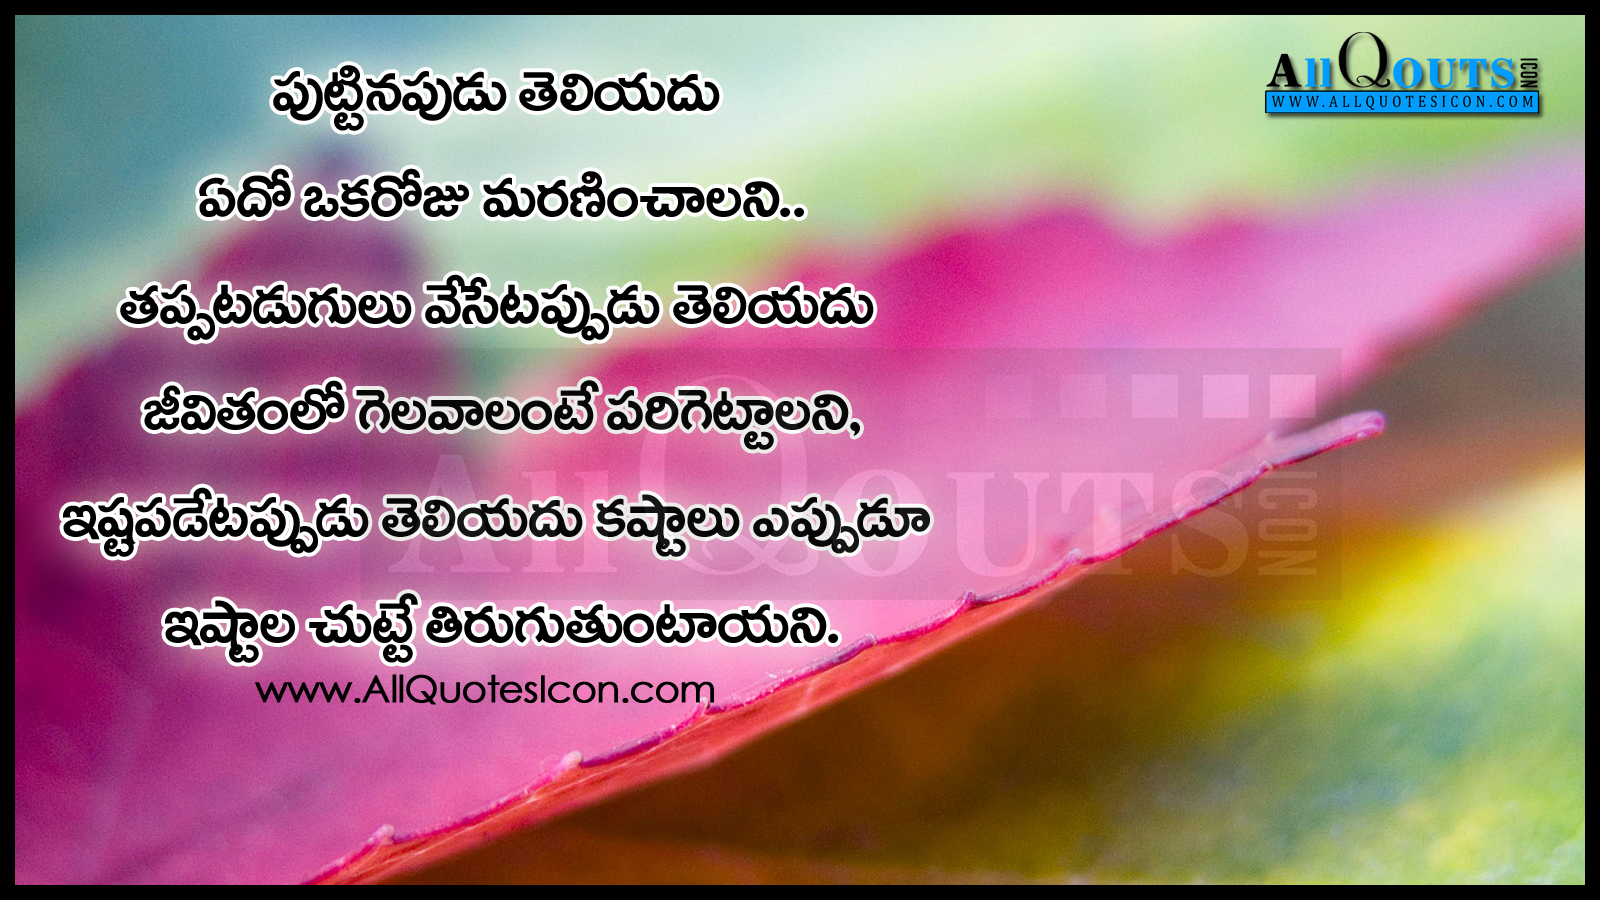 Telugu Awesome Life Quotations And Life Messages Wwwallquotesicon